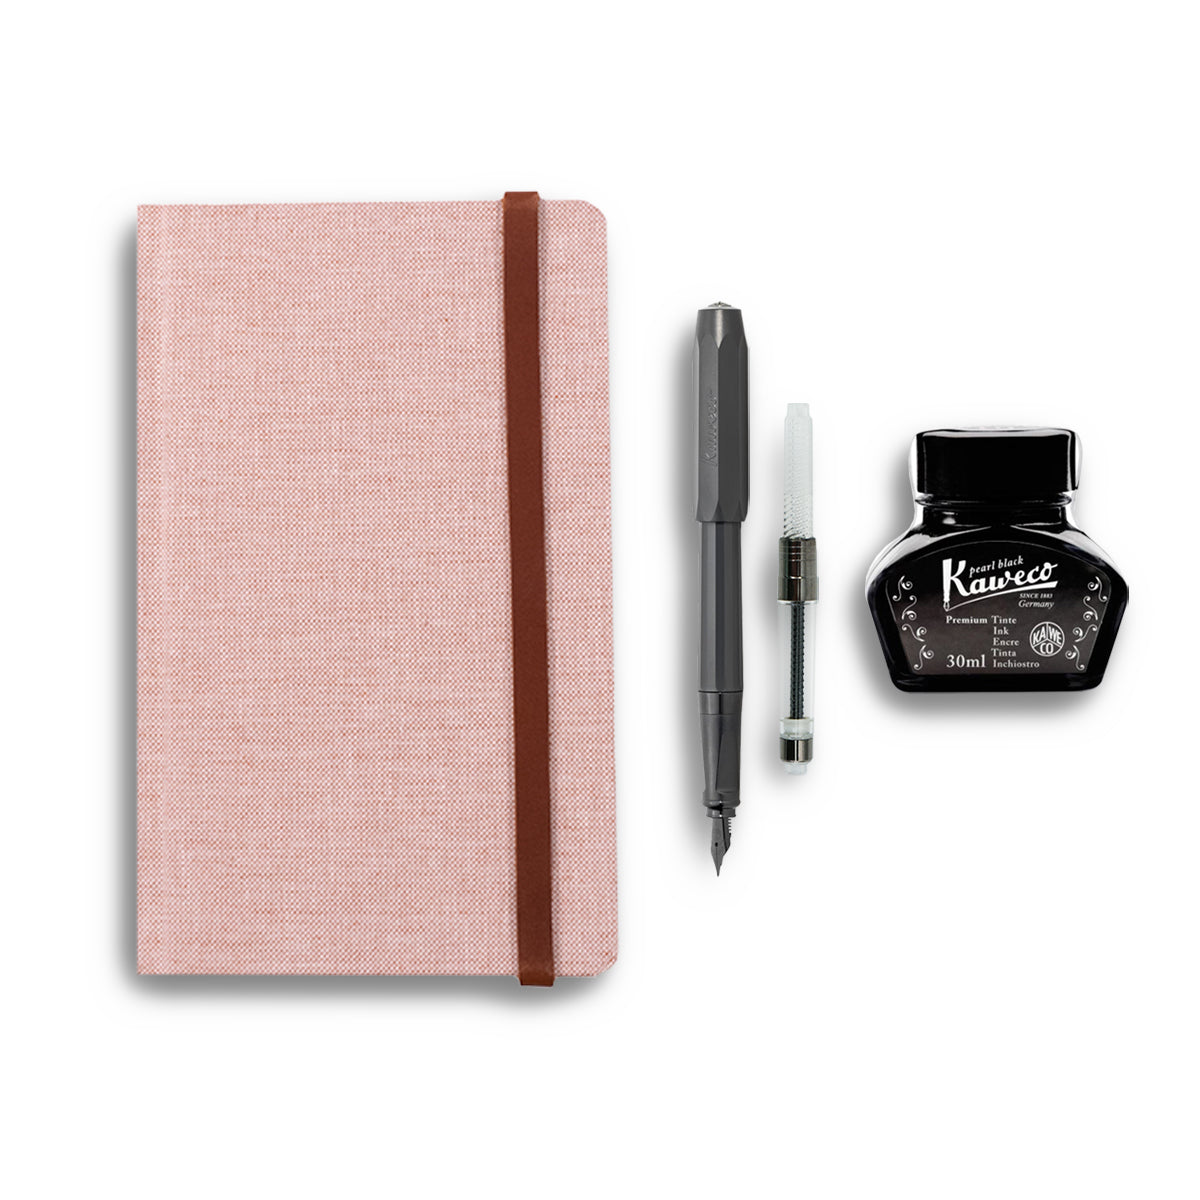 Linen Idea Notebook + Pen Gift Set